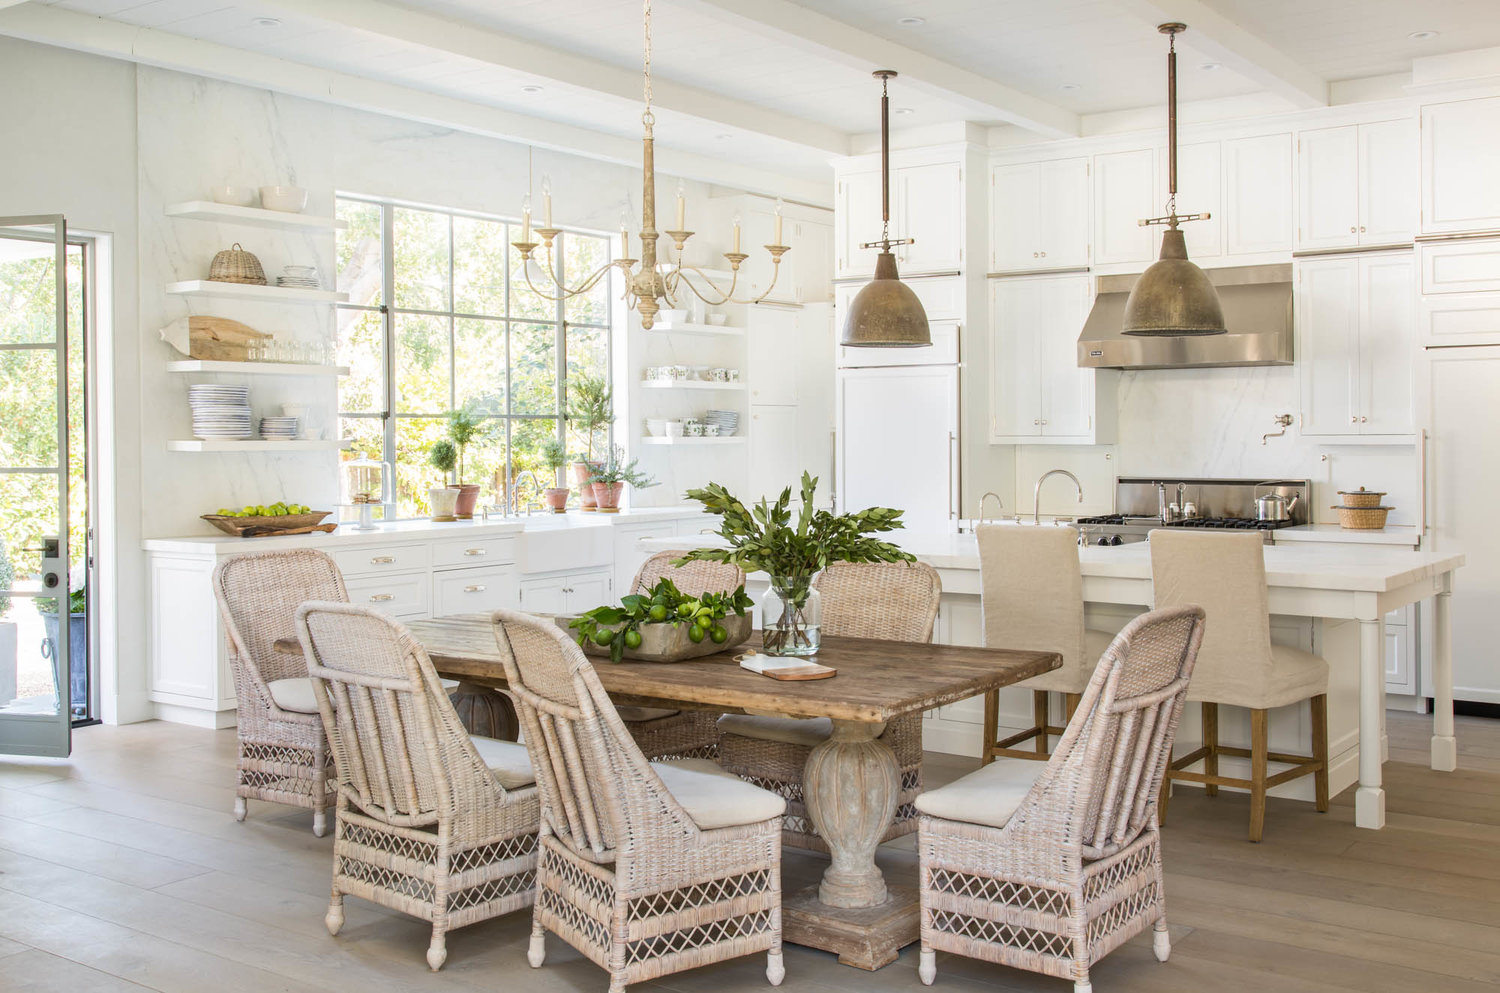 Get The Look! 15 Decorating Ideas From A Dreamy Kitchen In